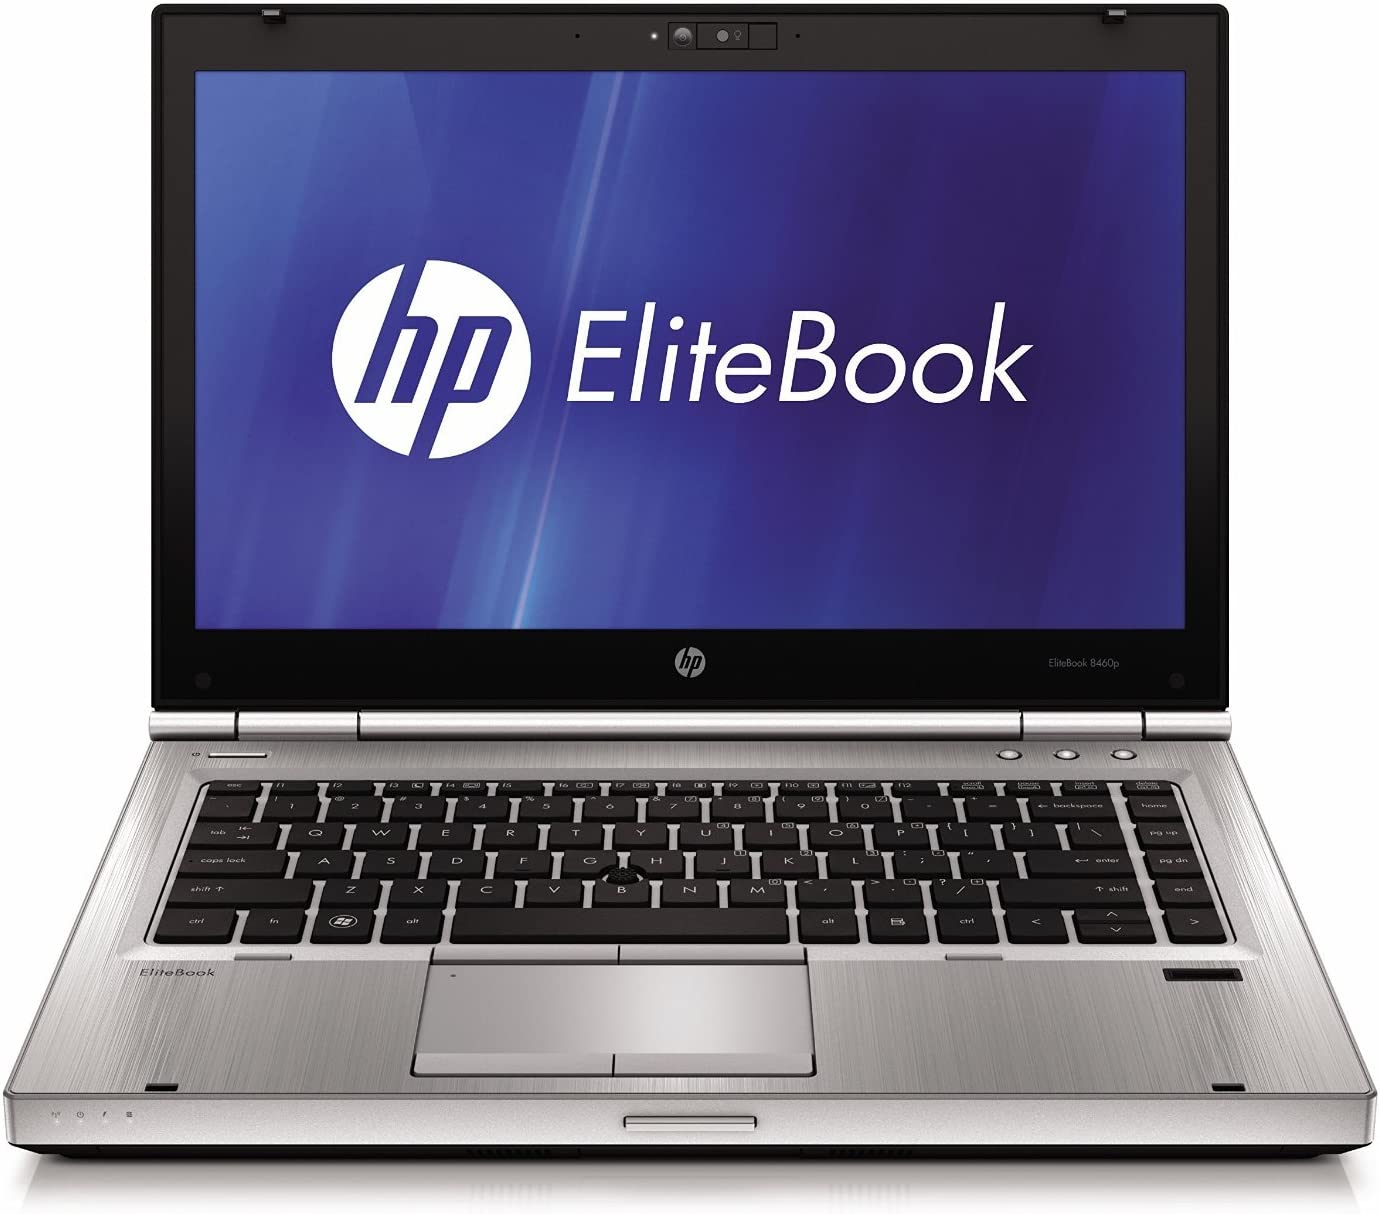 HP EliteBook 8460p Core i5 2520M 2.5GHz 8GB 500GB DVDRW WINDOWS 10 Professional 64 Bit